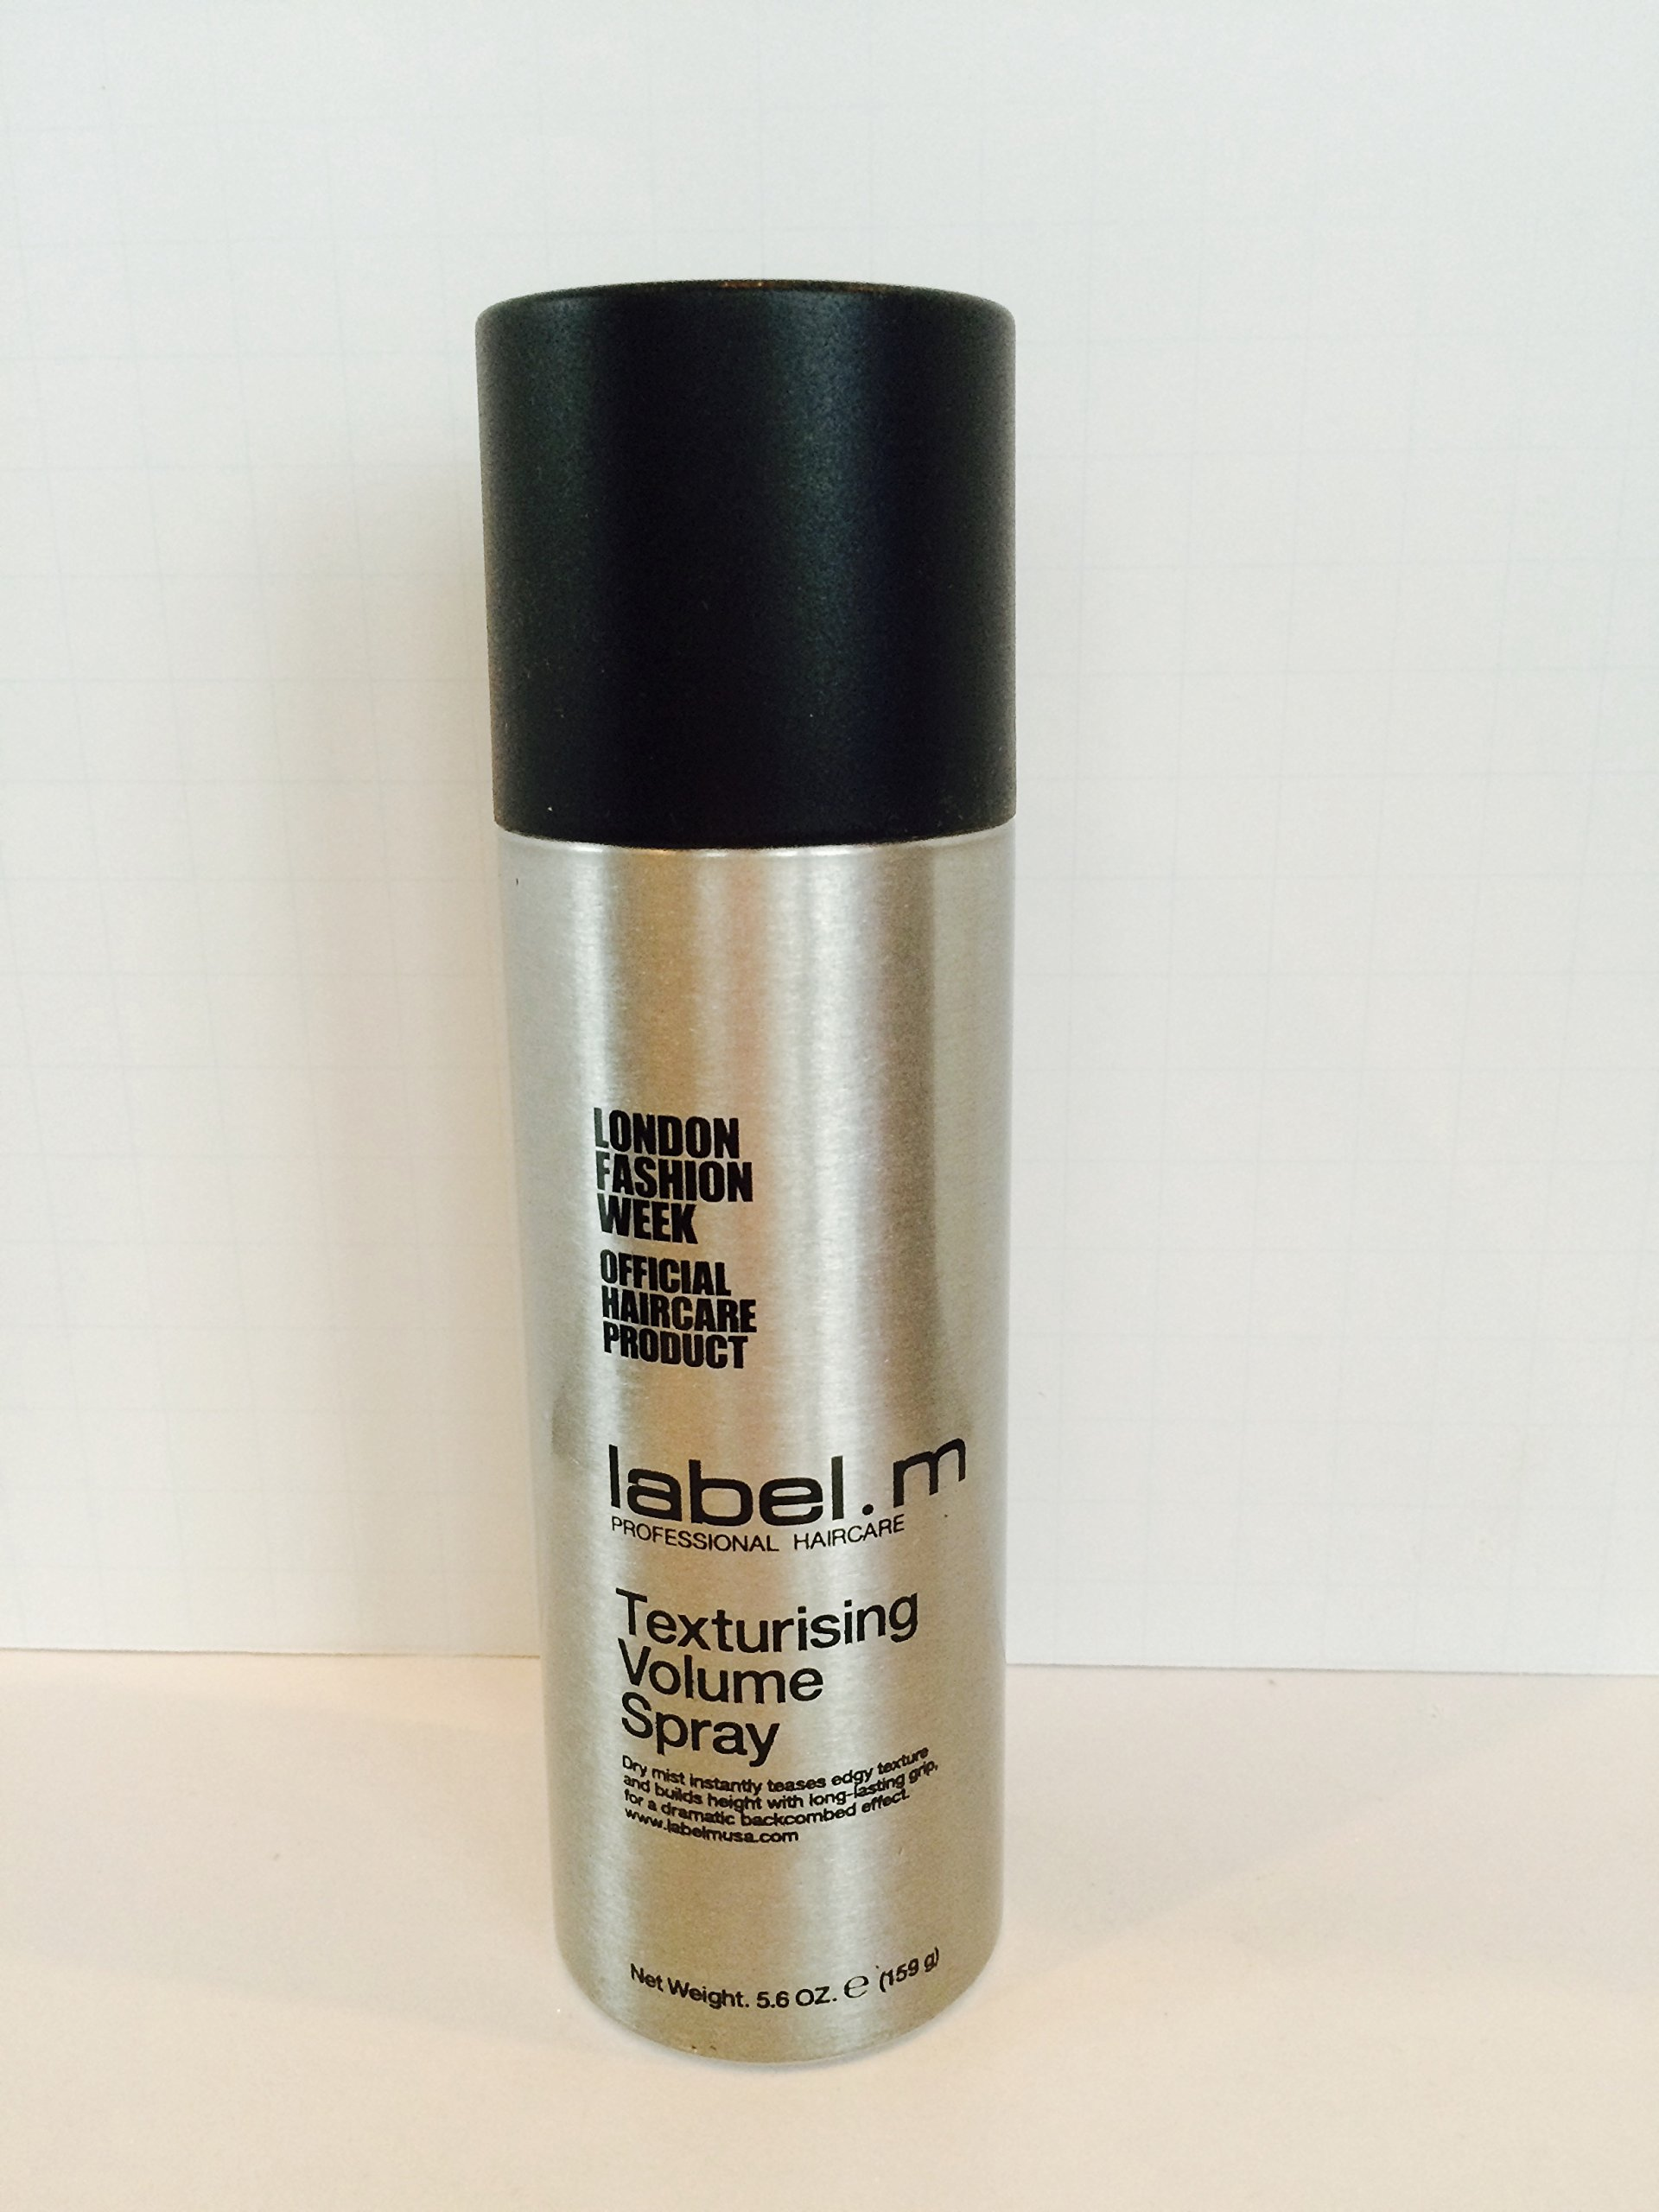 It's just a photo of Tactueux Label M Heat Protection Spray 200ml